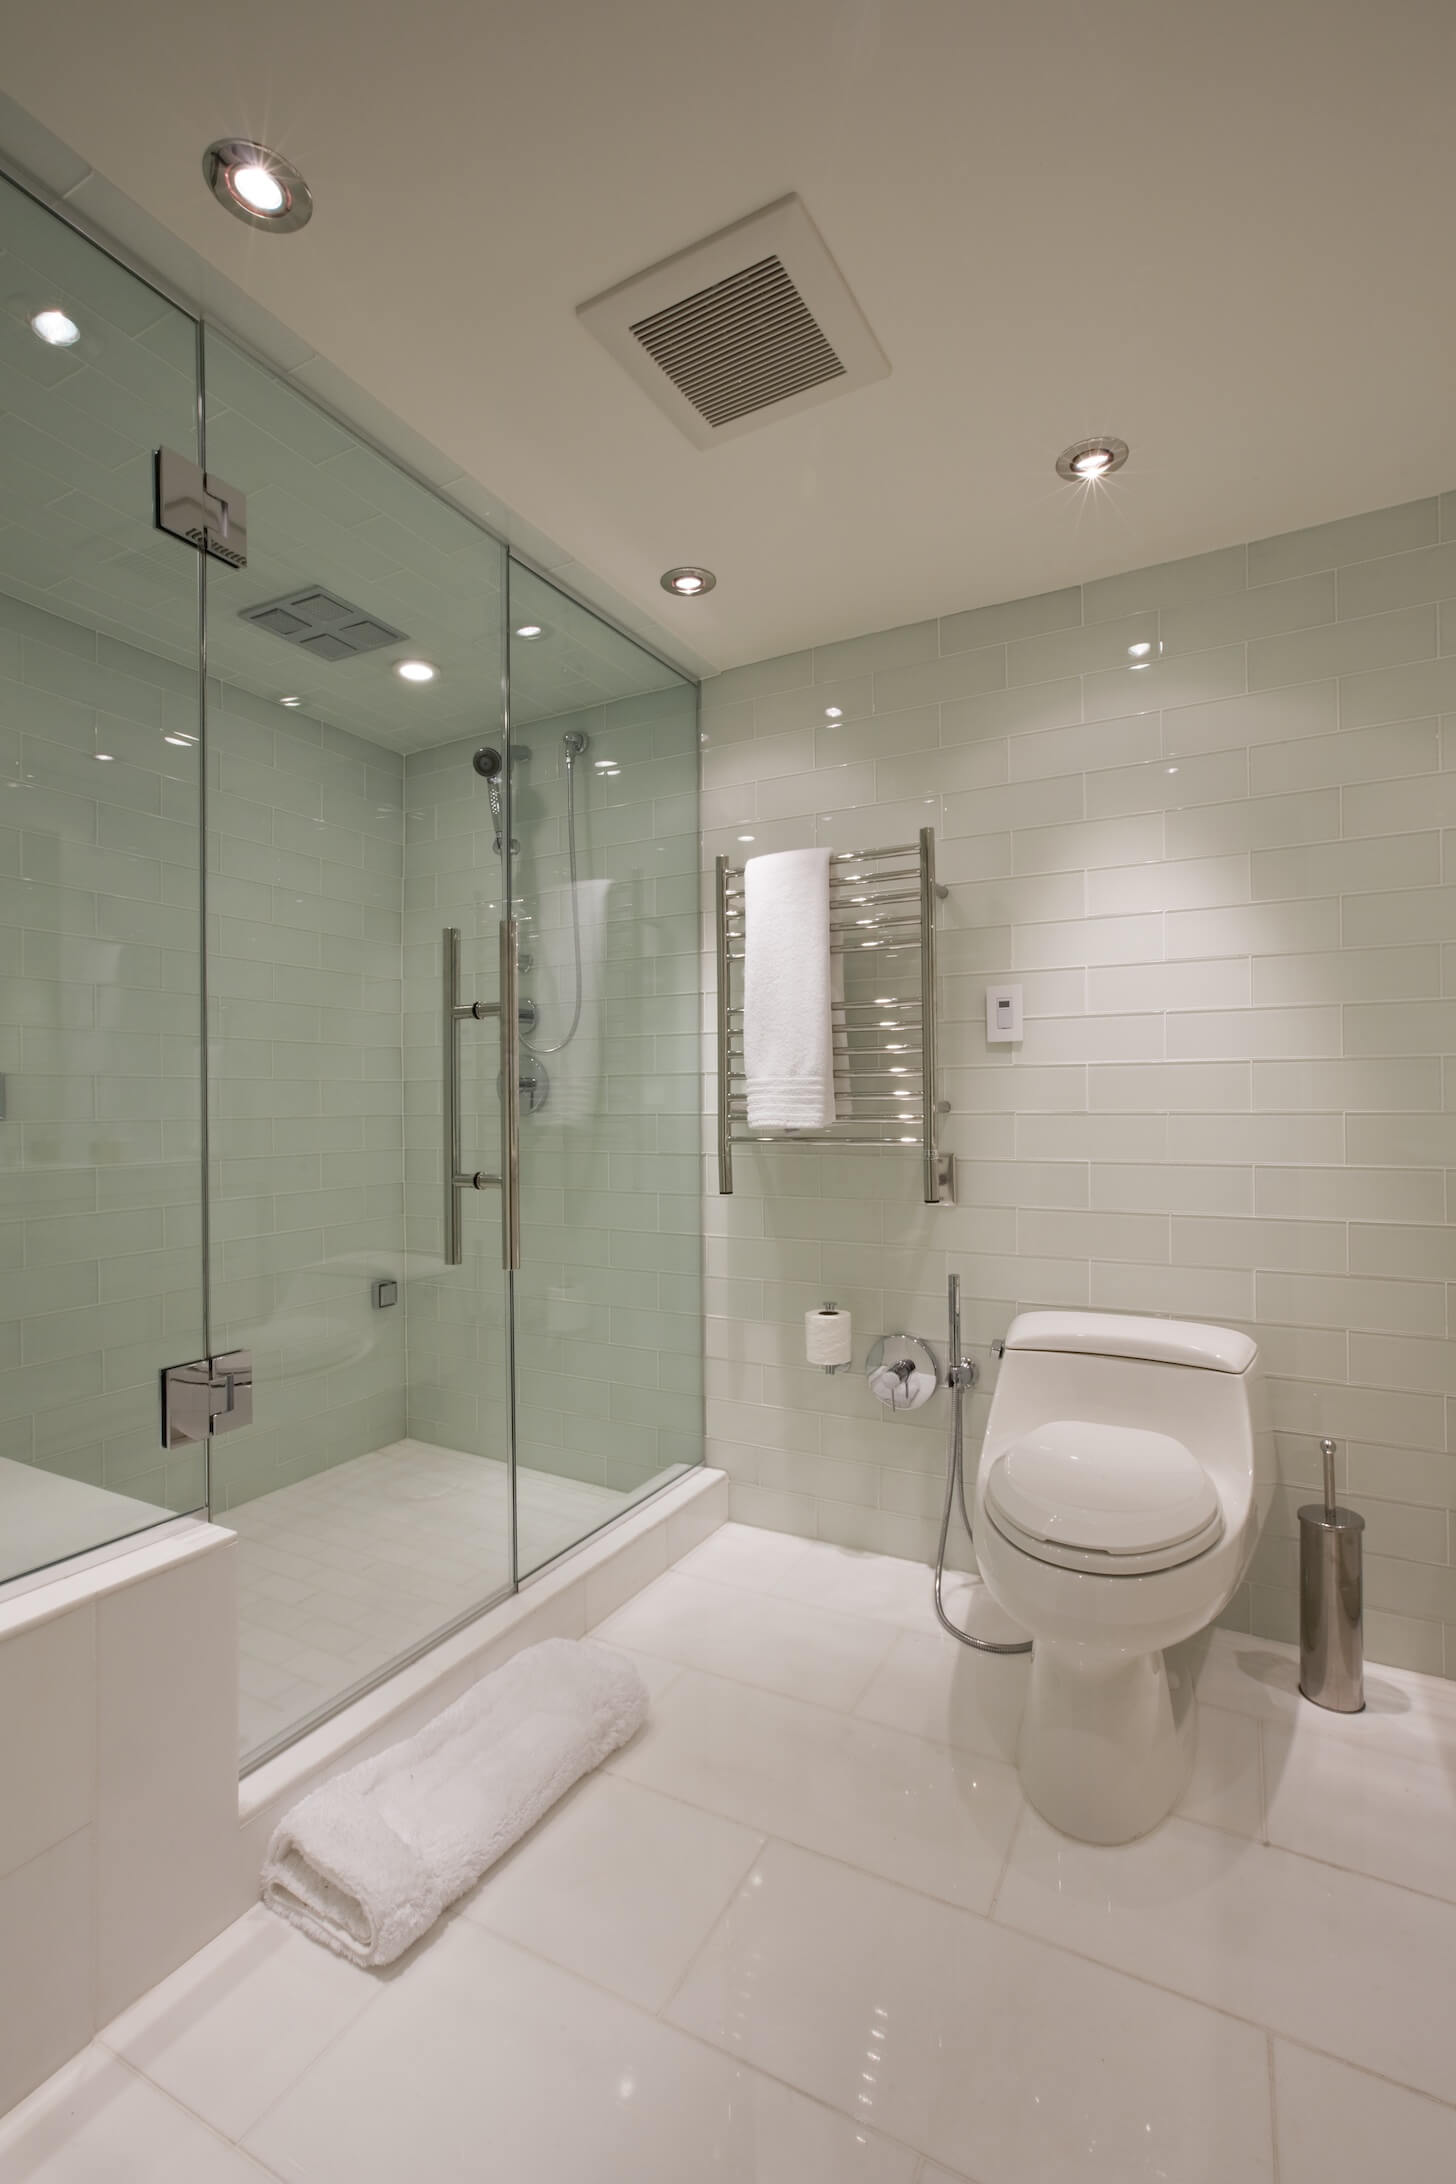 Bathroom features large white floor tiling and smaller brick-style wall surface, with large glass door shower on left.